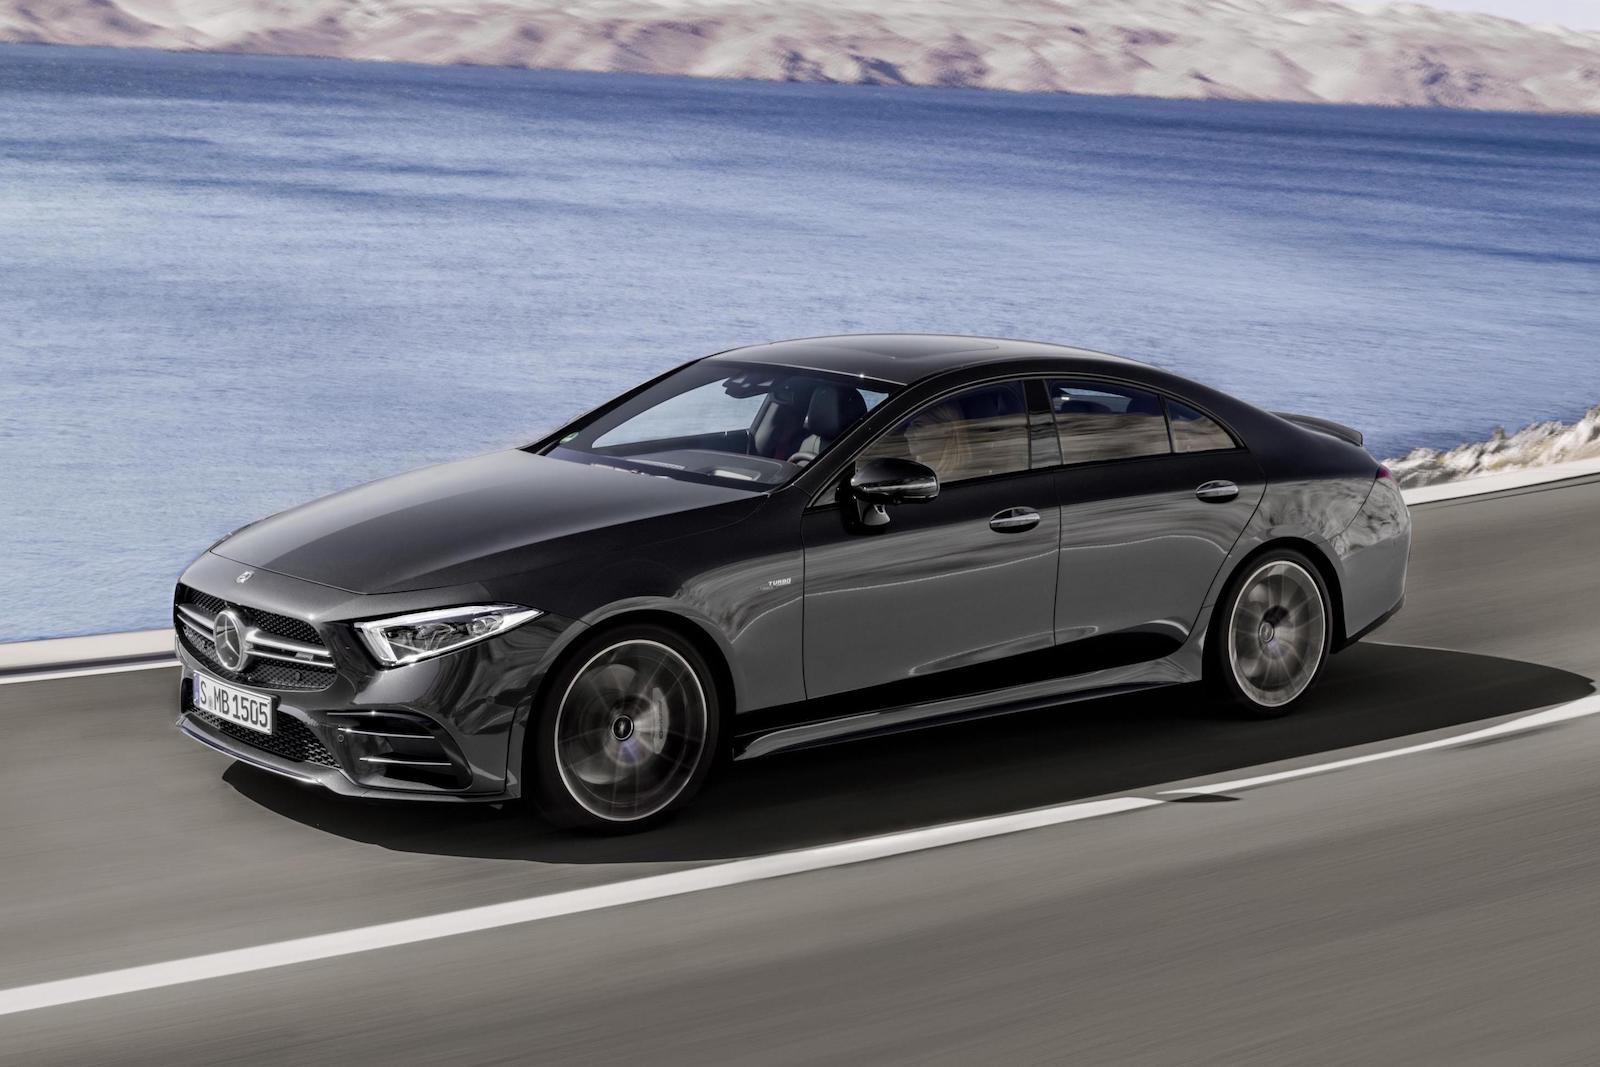 Mercedes Cls Interior 2018 >> Mercedes-AMG 53 revealed with inline 6cyl; CLS 53 and E 53 | PerformanceDrive